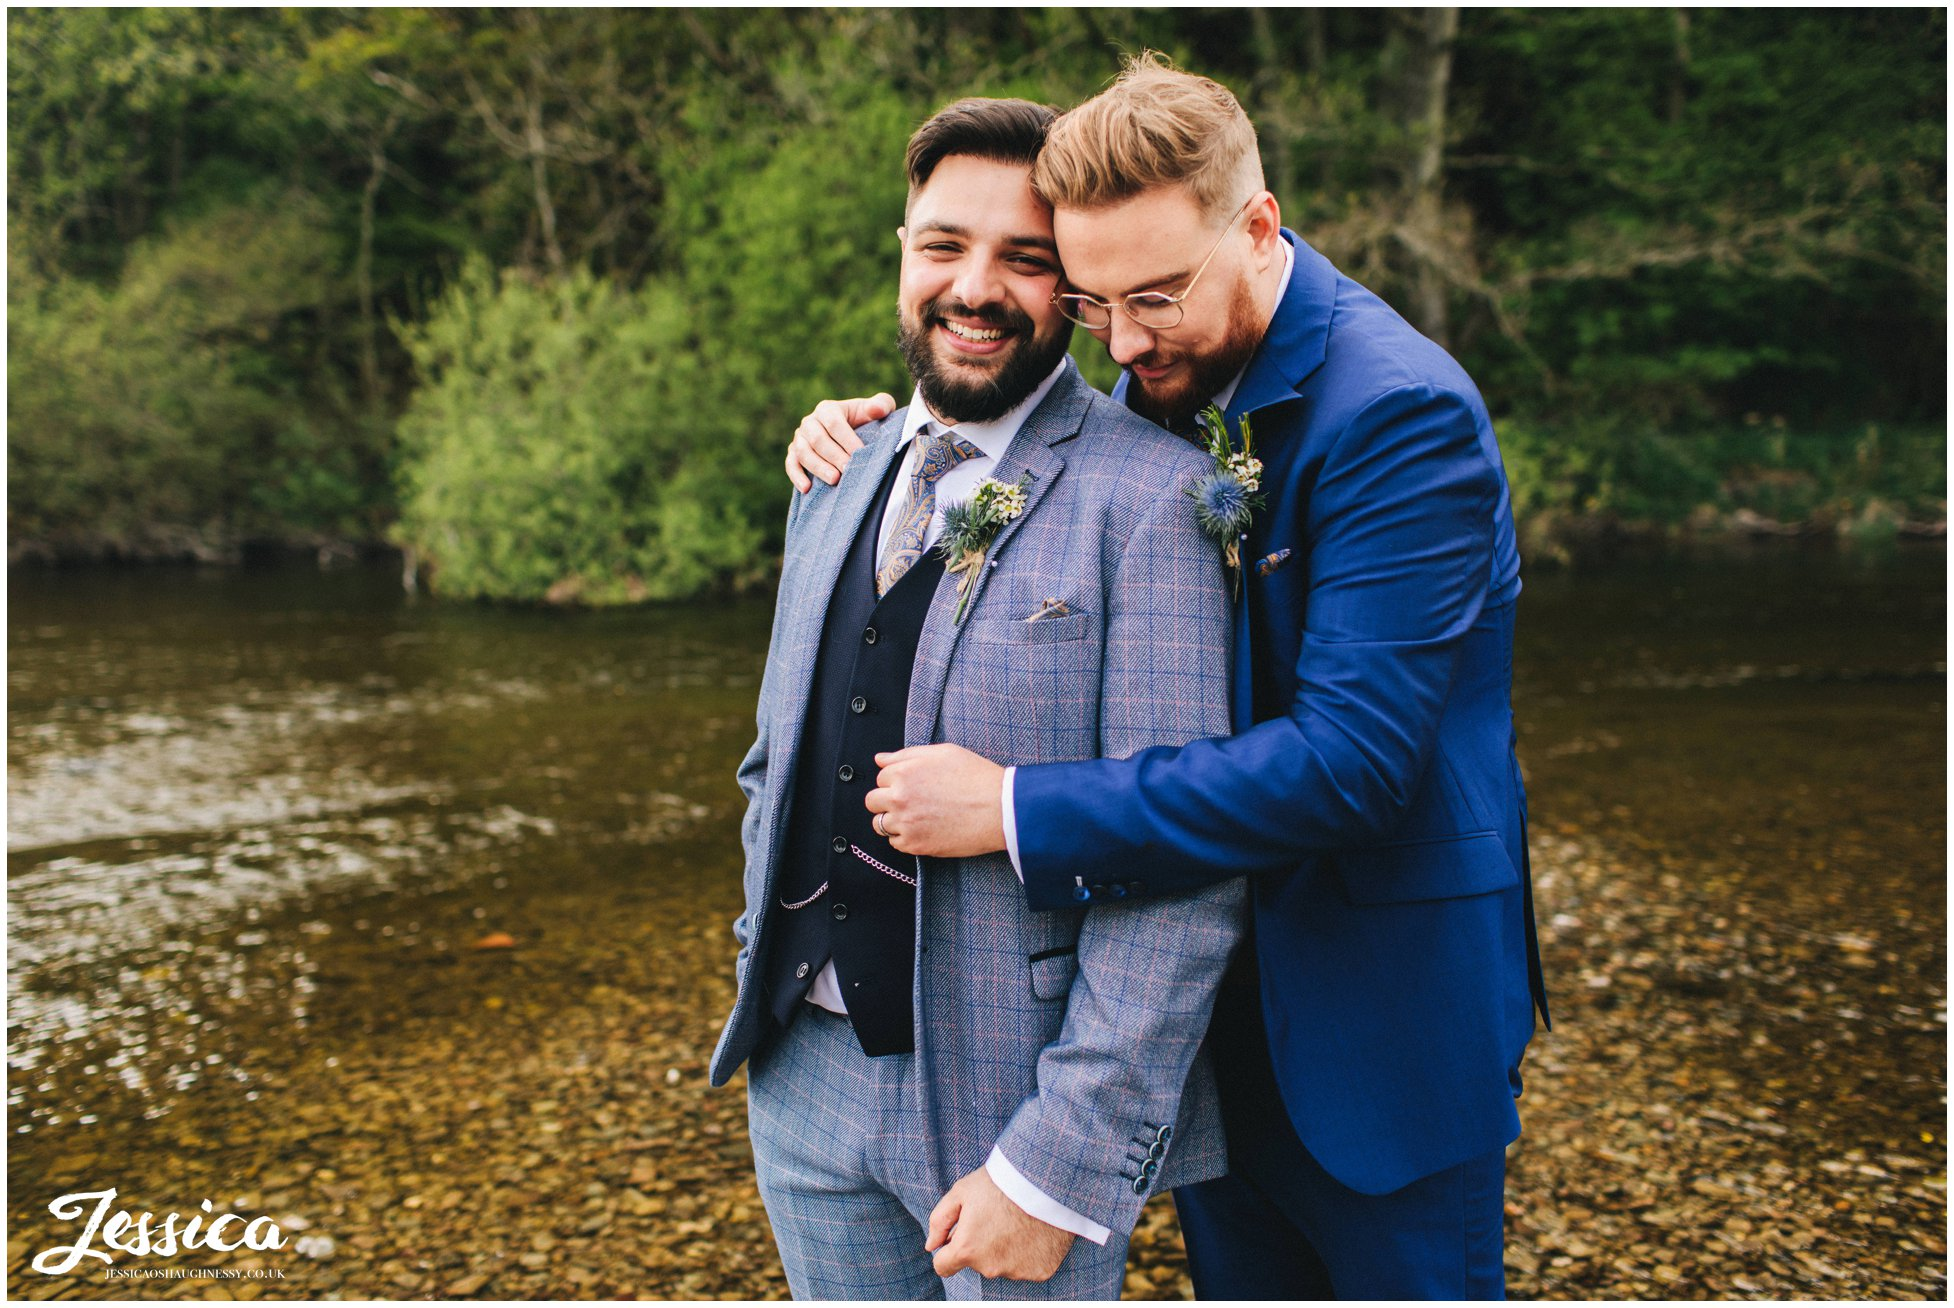 the couple embrace by the river at their lake district wedding